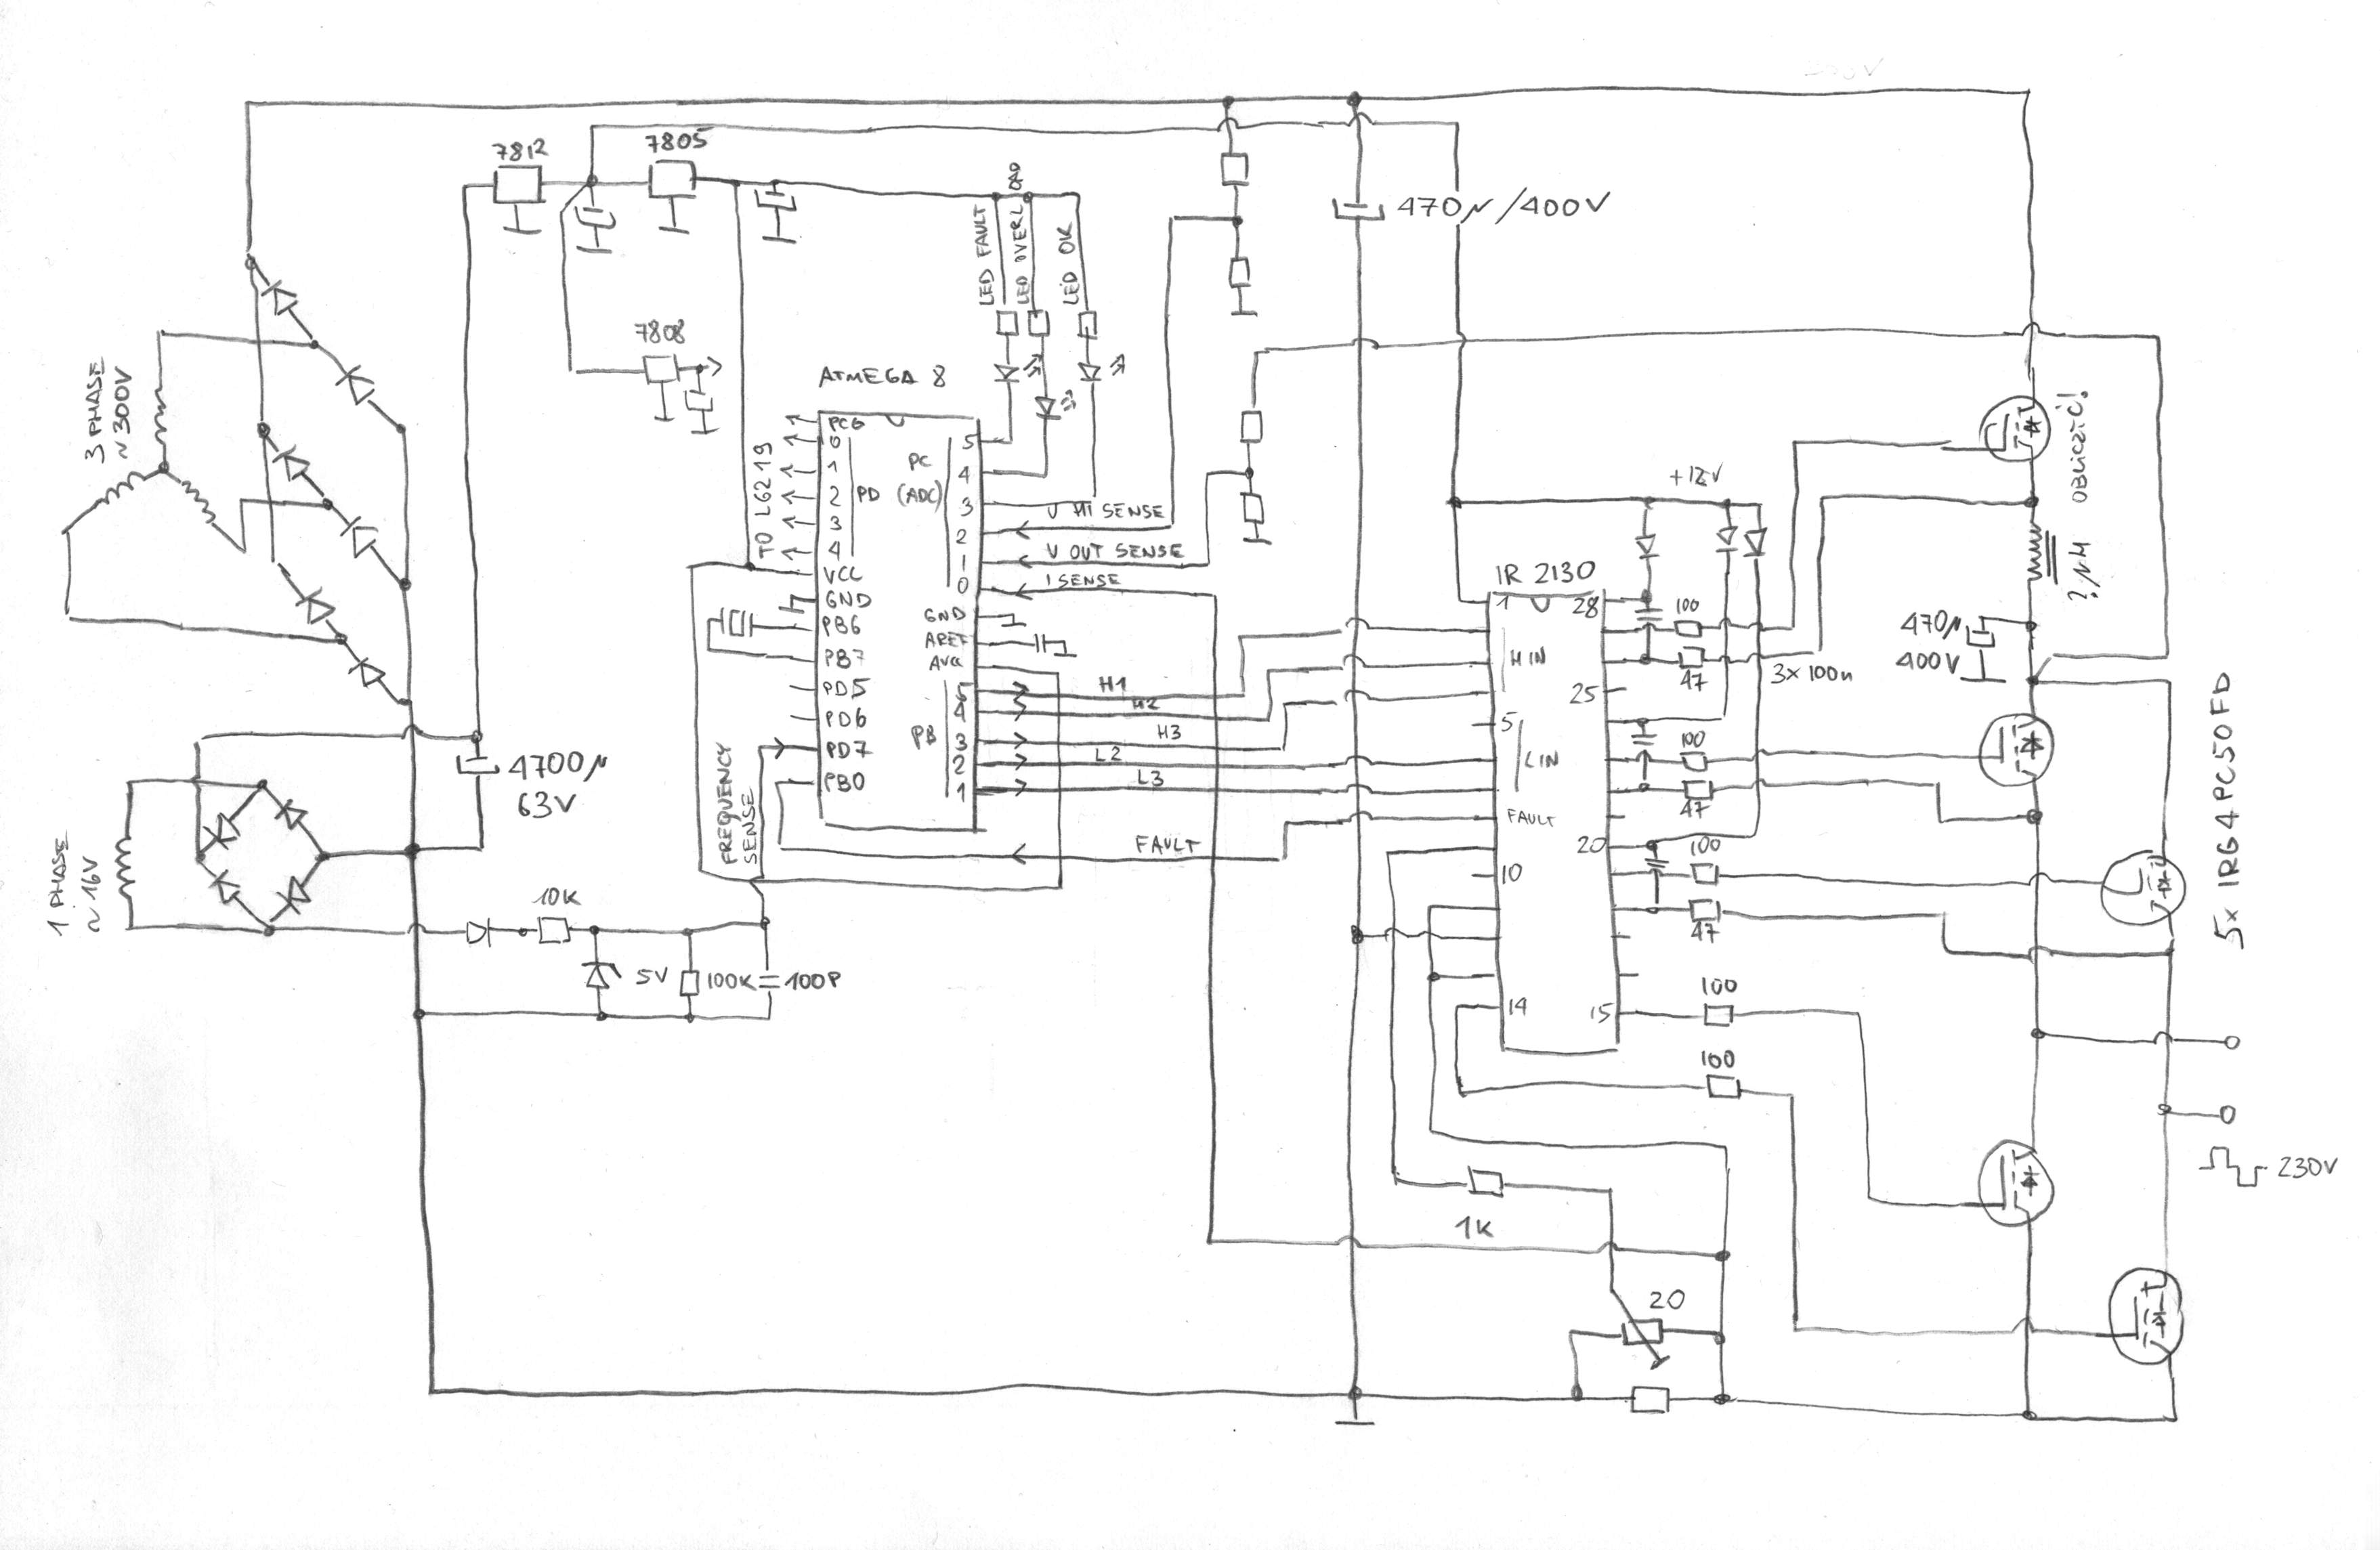 Ingersoll Rand Wiring Diagram from i1.wp.com